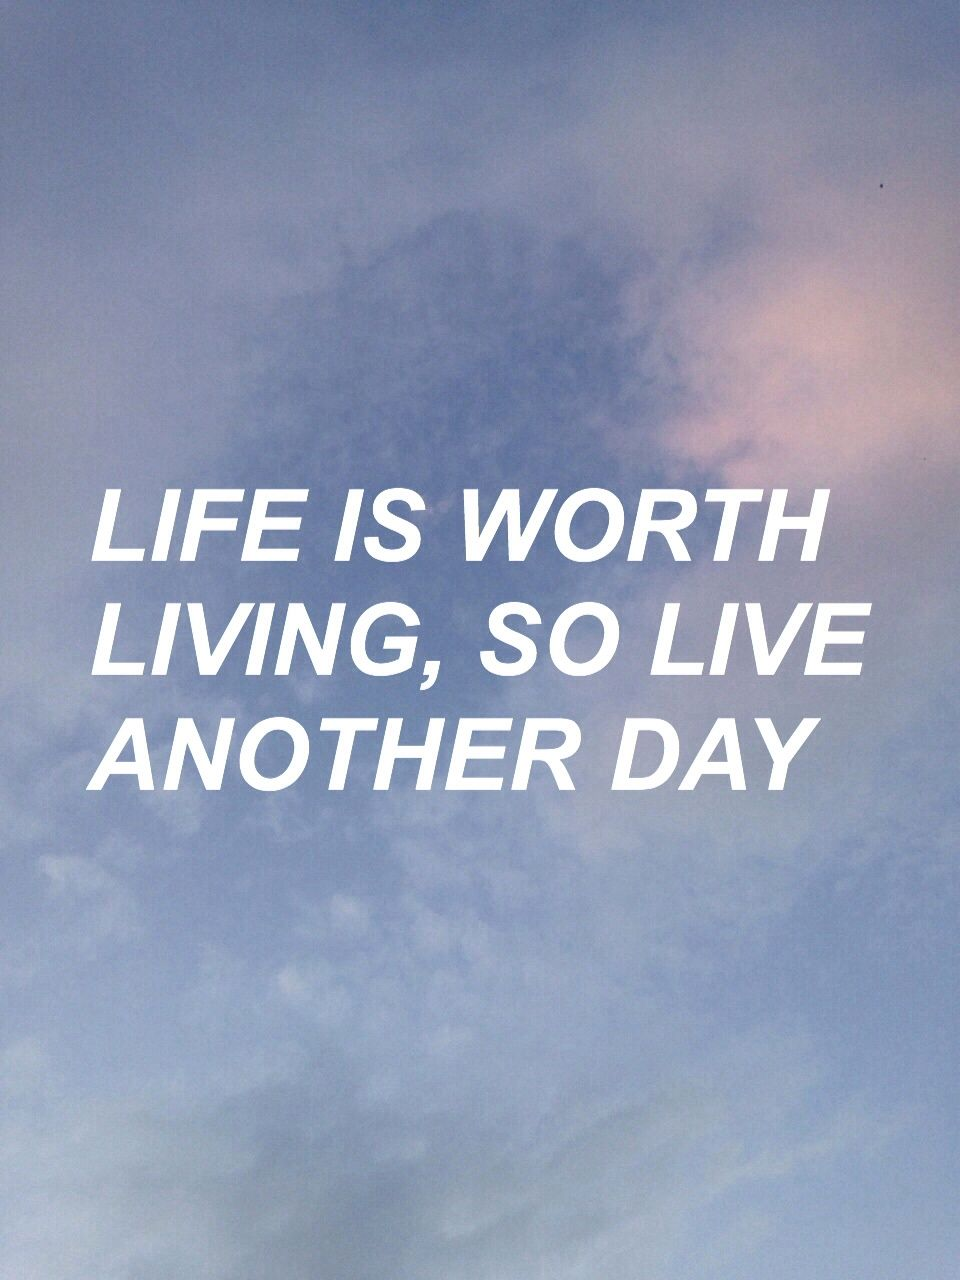 Justin bieber tumblr lyrics live quotes - 17 Best Images About Wallpaper On Pinterest Stitches Shawn Mendes Songs And Songs